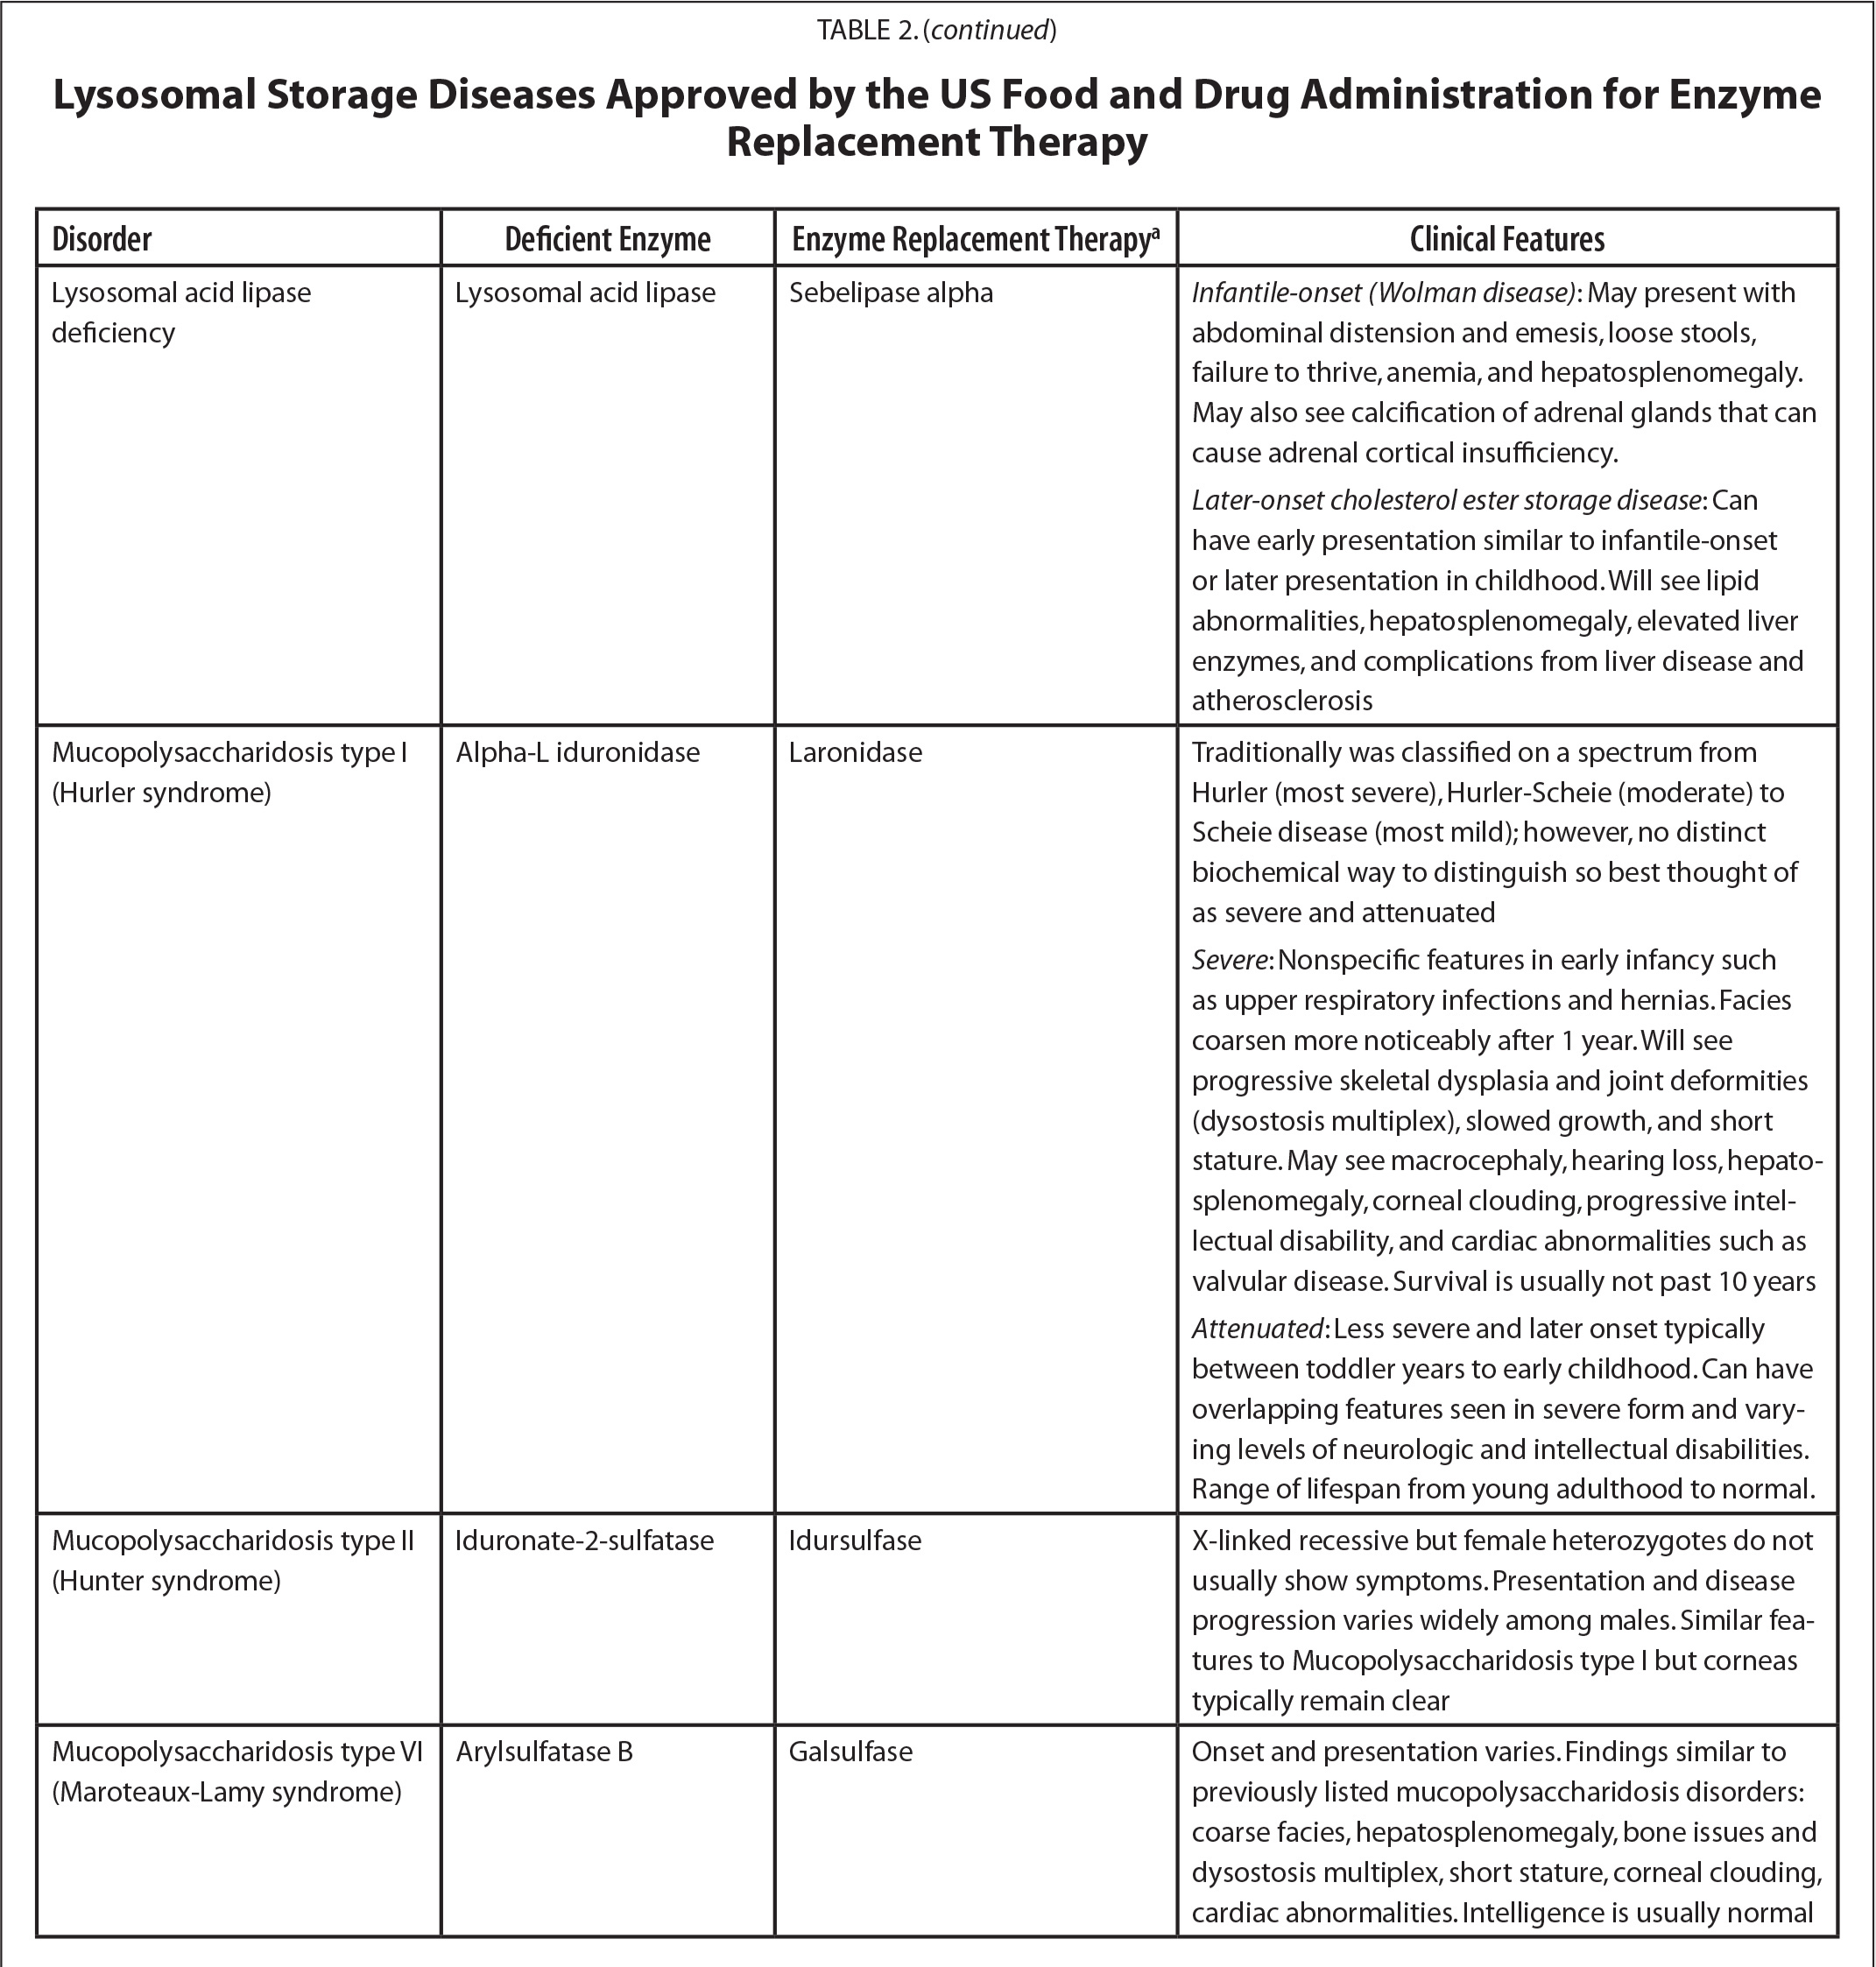 Lysosomal Storage Diseases Approved by the US Food and Drug Administration for Enzyme Replacement Therapy